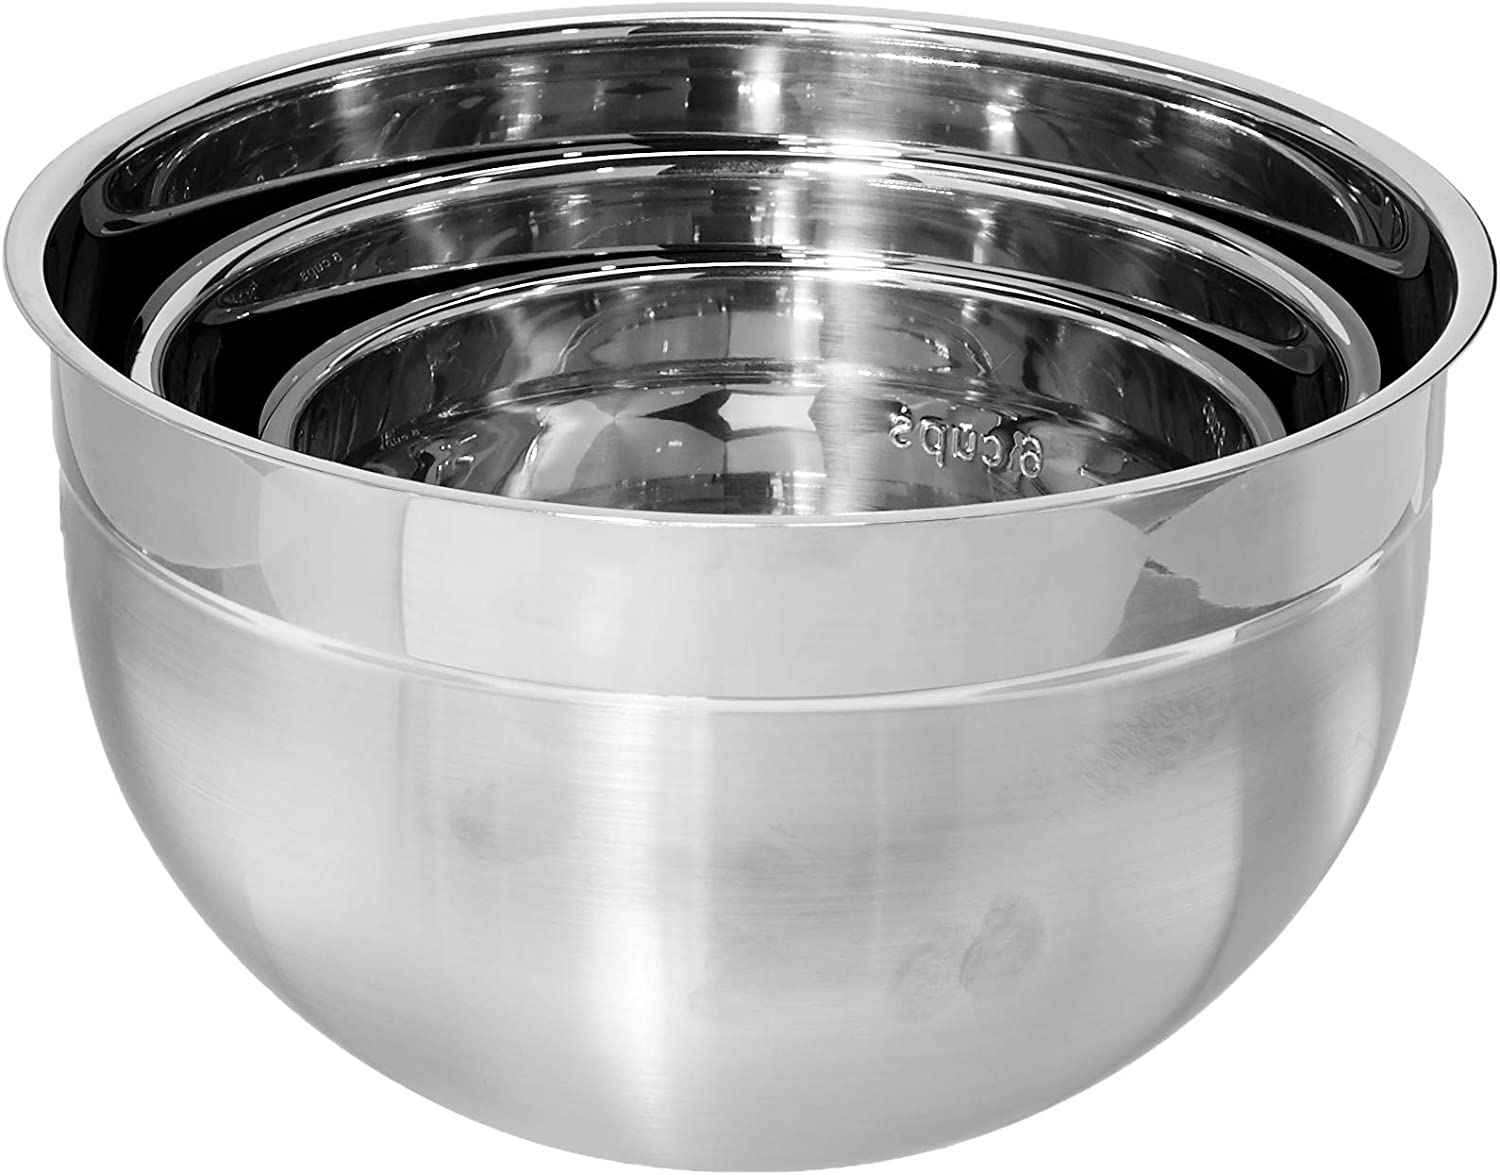 Cuisipro Stainless Steel Mixing Bowl 3 Piece Set